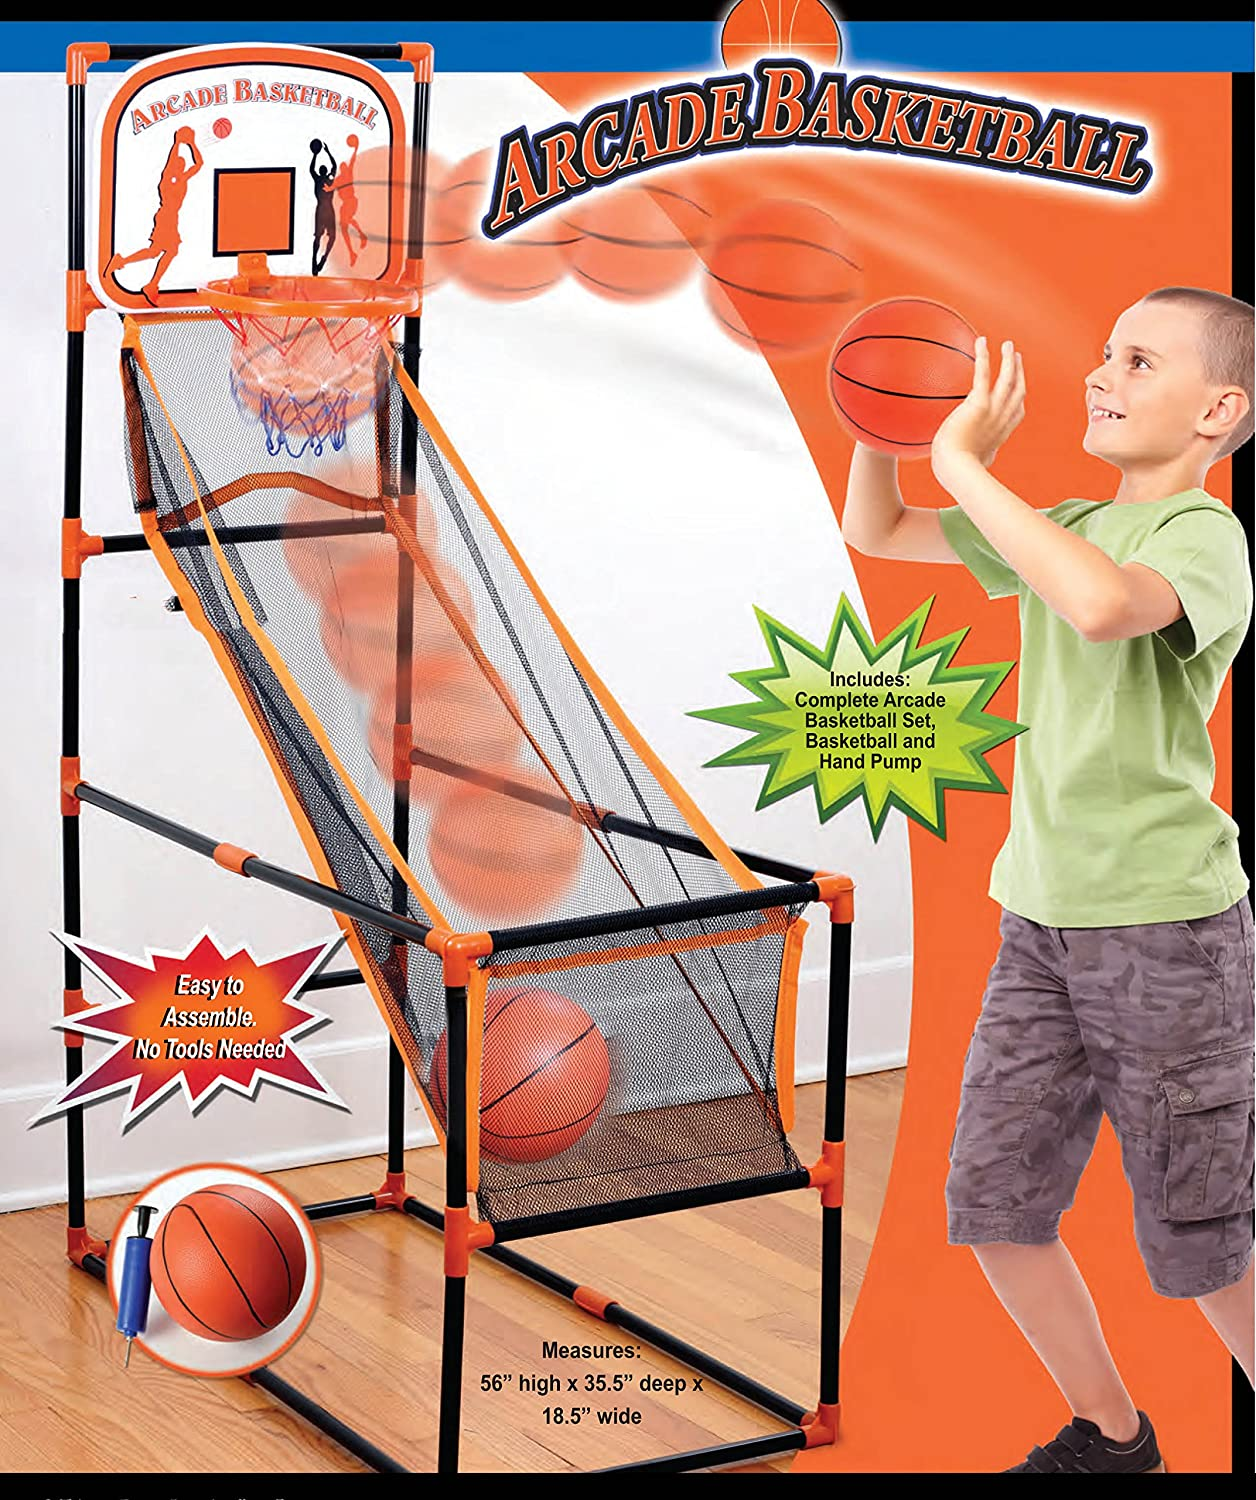 [Liteaid]Liteaid Arcade Basketball Game 4703 [並行輸入品] B00MB3YHIK